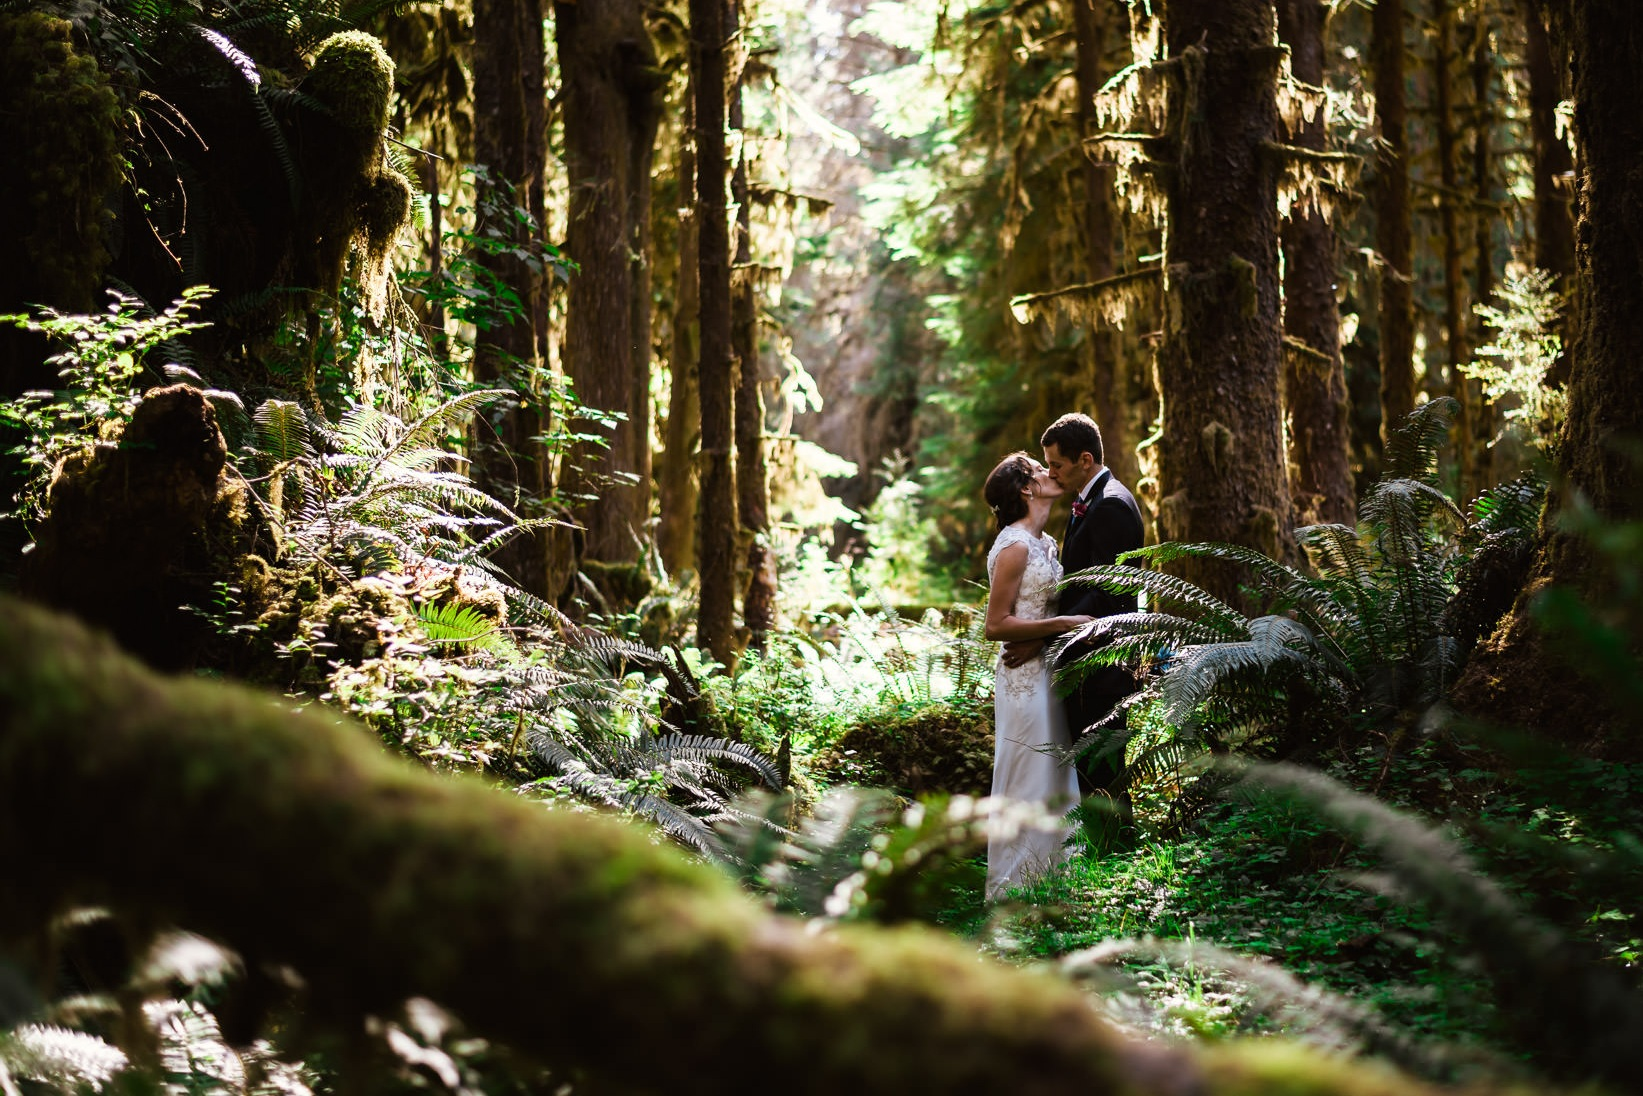 - Norm did an amazing job with our elopement in Olympic NP! He traveled without hesitation and helped research places beforehand since the park is huge and made recommendations based on when/where would have the best lighting for pictures. He spent the day before scouting out locations for our pictures and ceremony. It was a small elopement and he was very accommodating when we arrived with a couple more people than originally planned. During the ceremony we hardly knew he was there and are in awe of the pictures he was able to get without us noticing. He stayed with us until sunset, taking pictures at the two locations we had picked out. We highly recommend Norm for anyone planning an elopement, especially in a national park!!